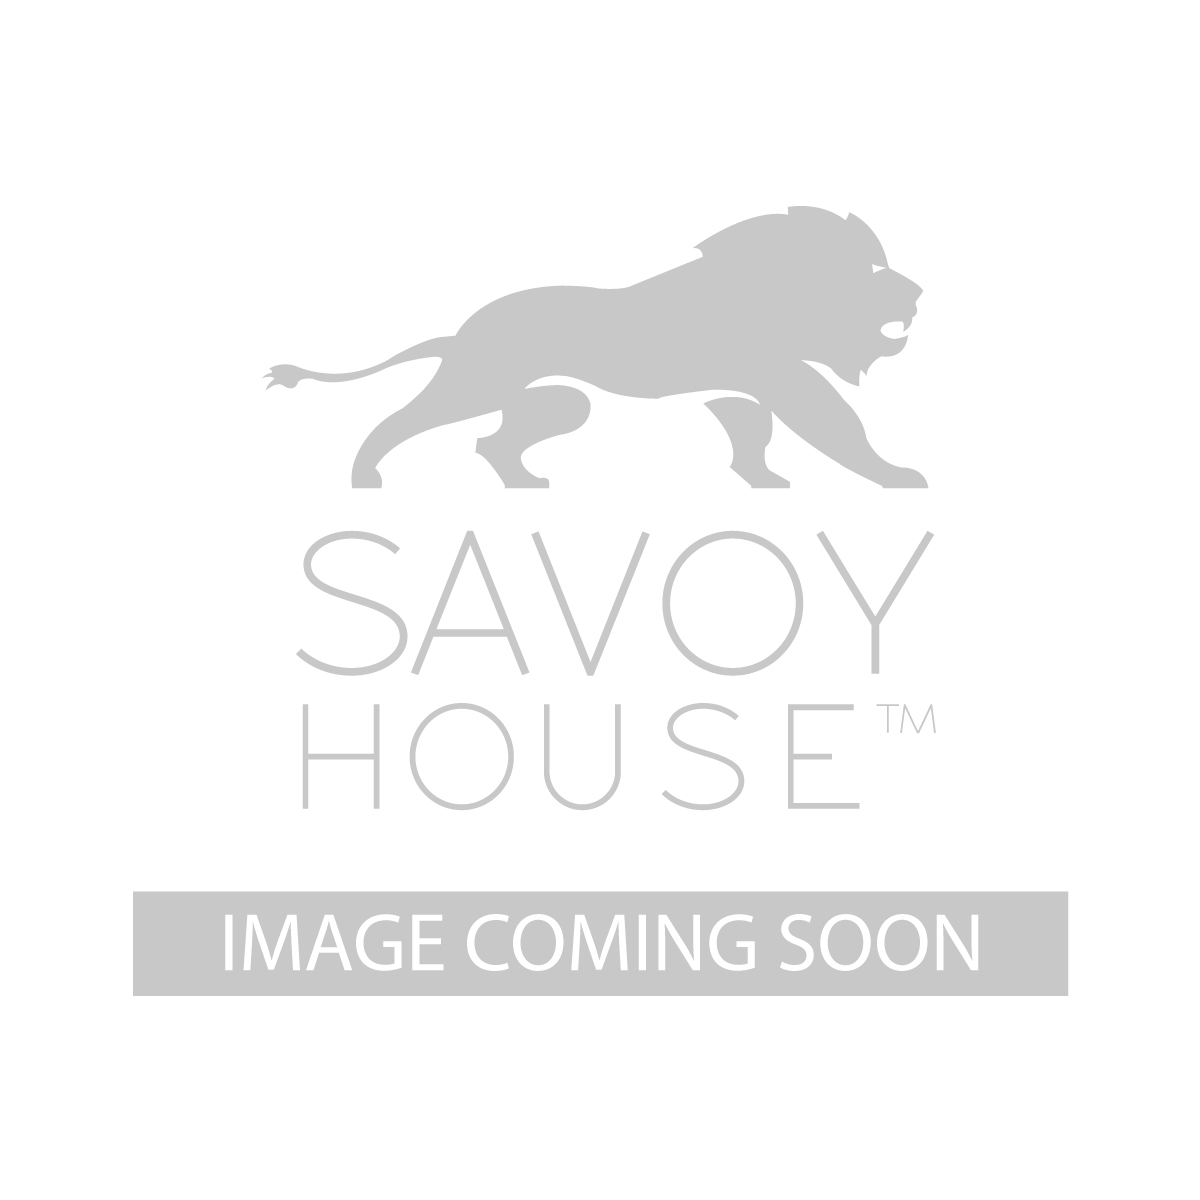 52 6000 5rw 196 winchester 5 blade ceiling fan by savoy house winchester 5 blade ceiling fan mozeypictures Images